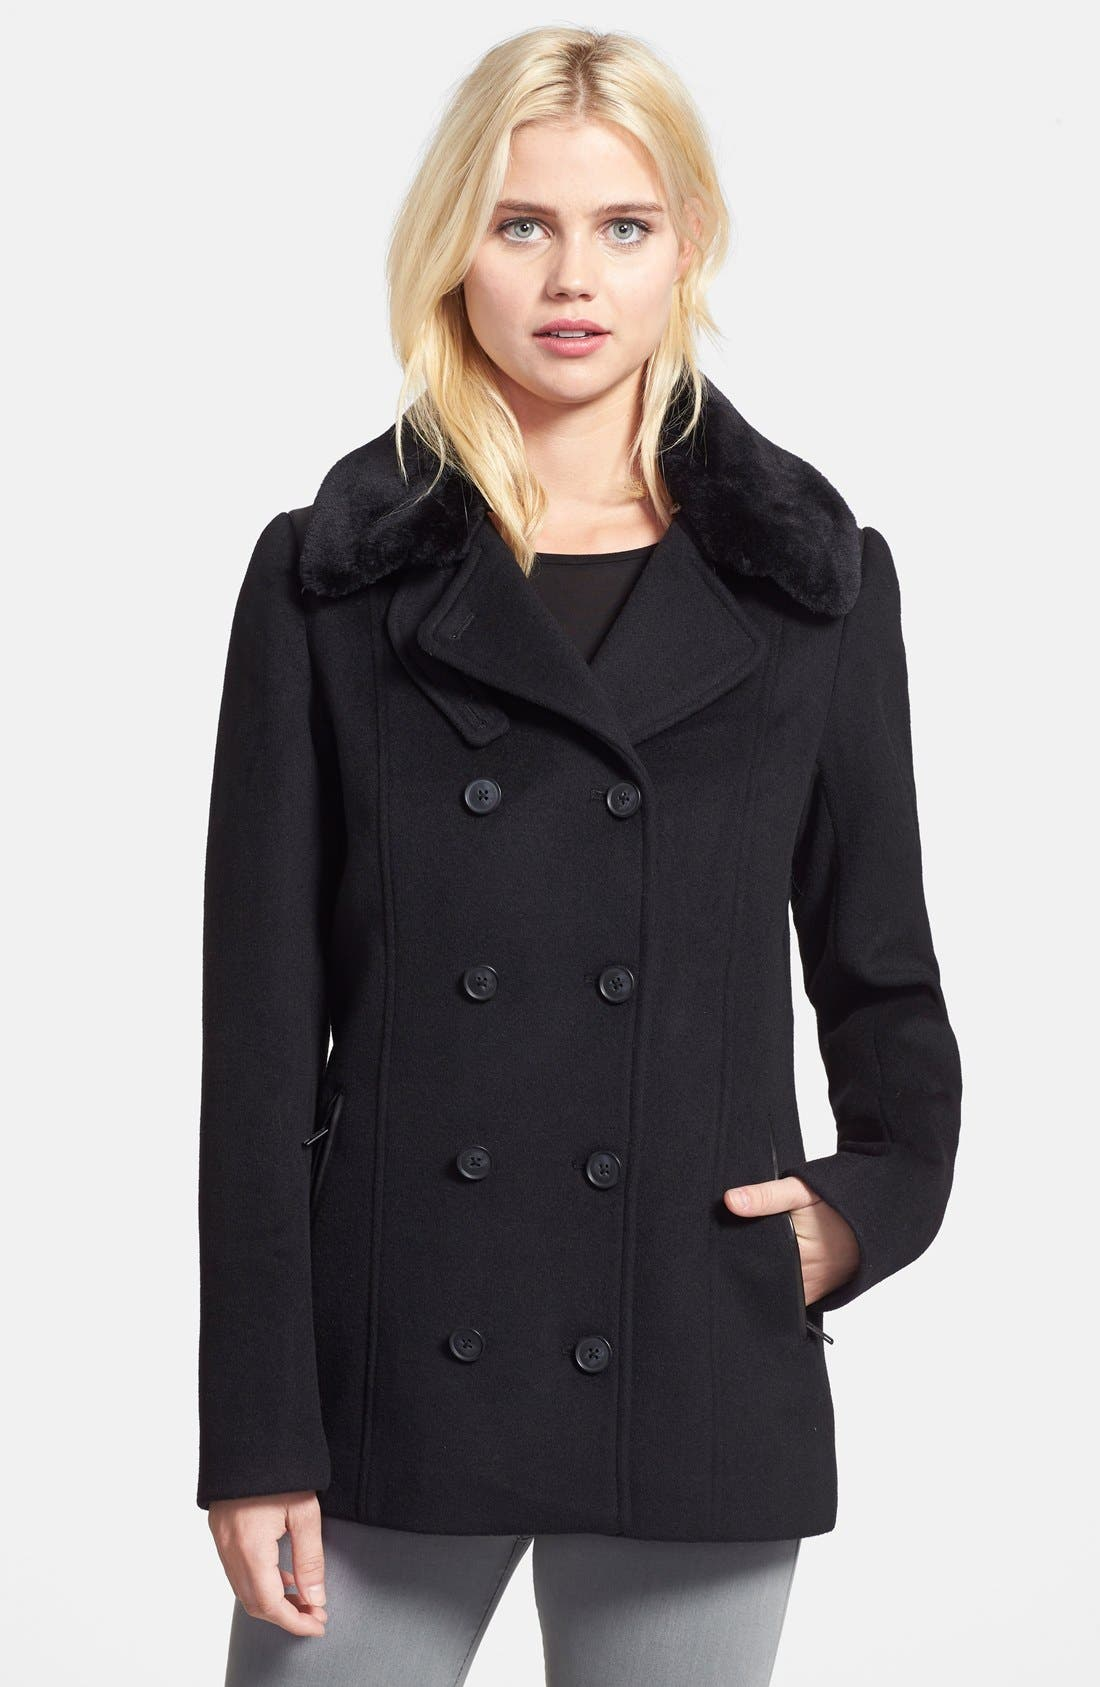 Alternate Image 1 Selected - Soia & Kyo Double Breasted Wool Blend Peacoat with Faux Fur Collar (Online Only)